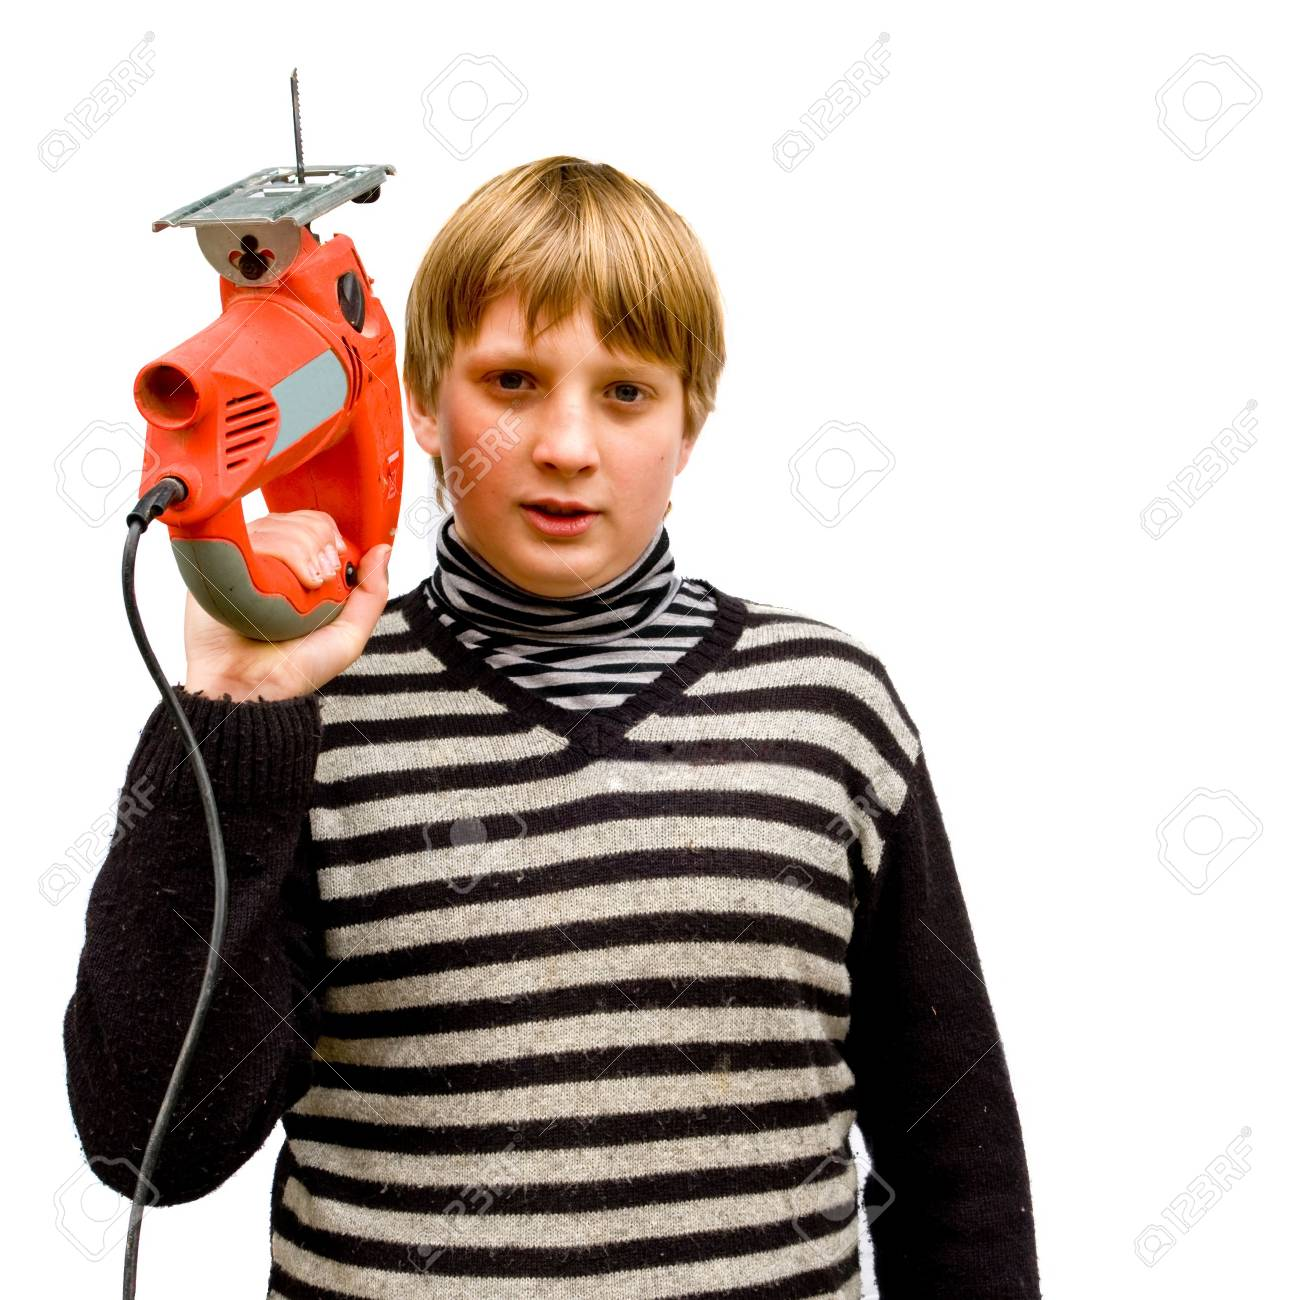 Boy with a fret saw on a white background Stock Photo - 6683864